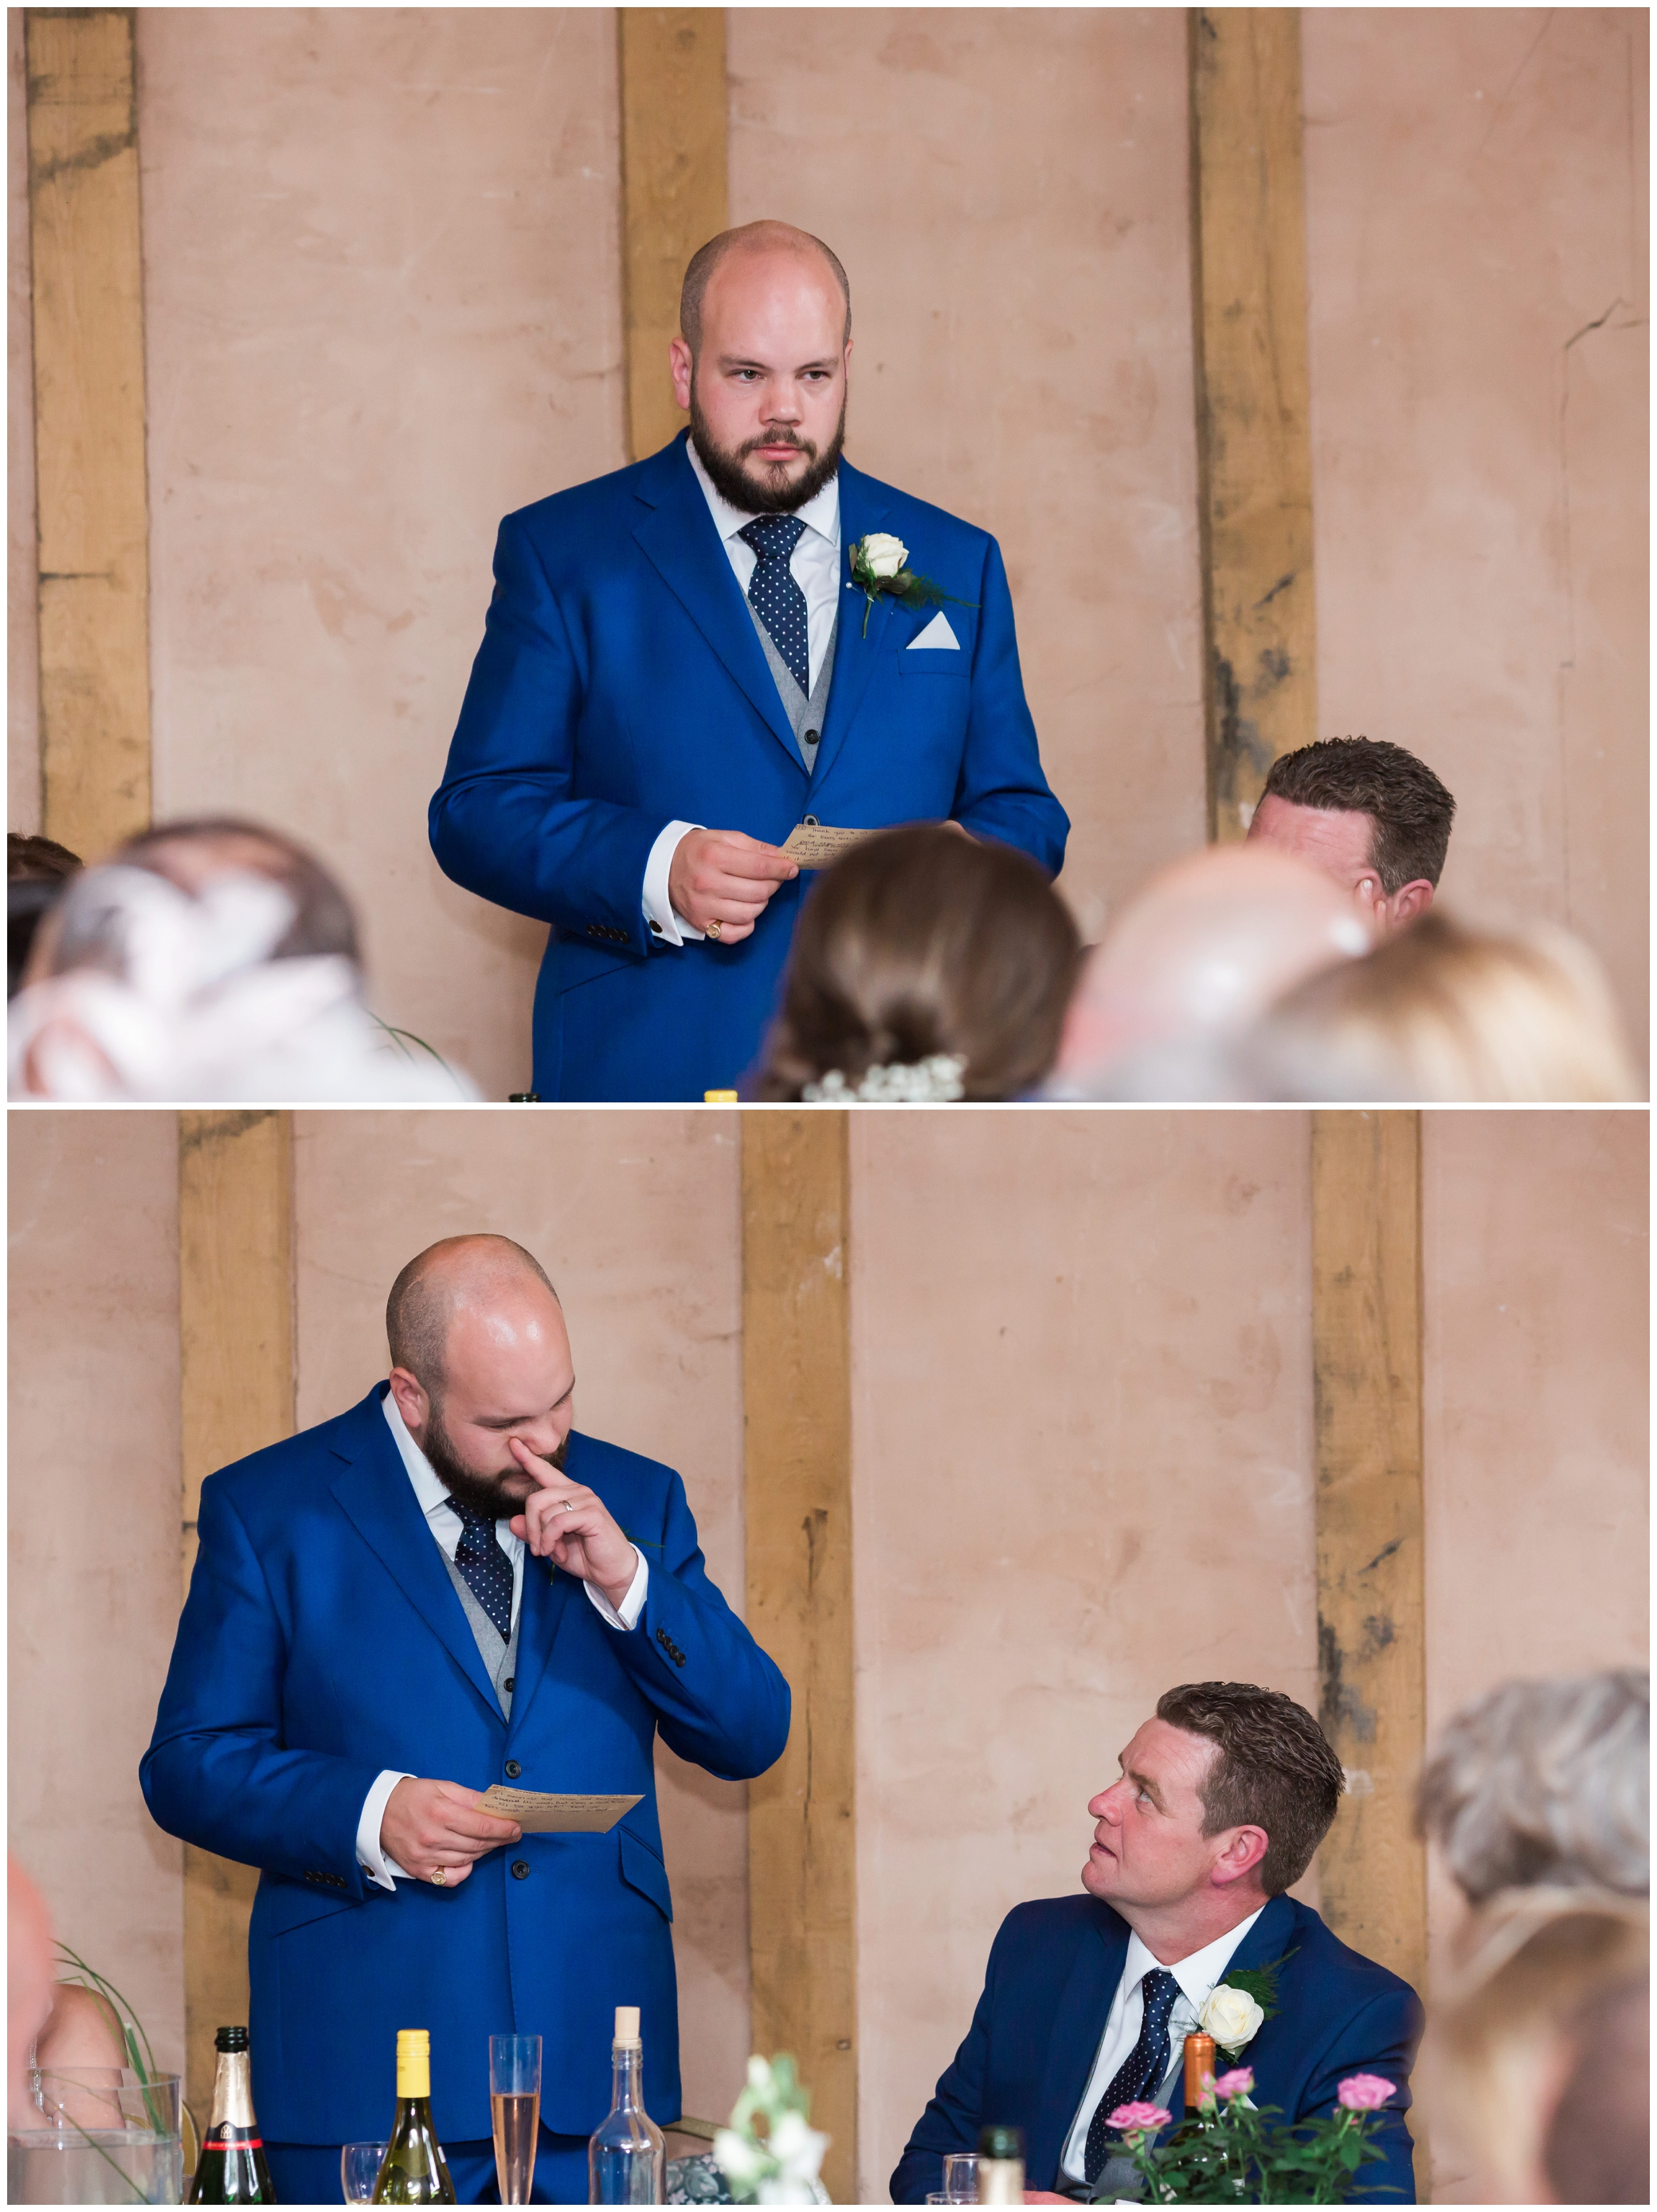 Groom speech at Yoghurt Rooms wedding venue